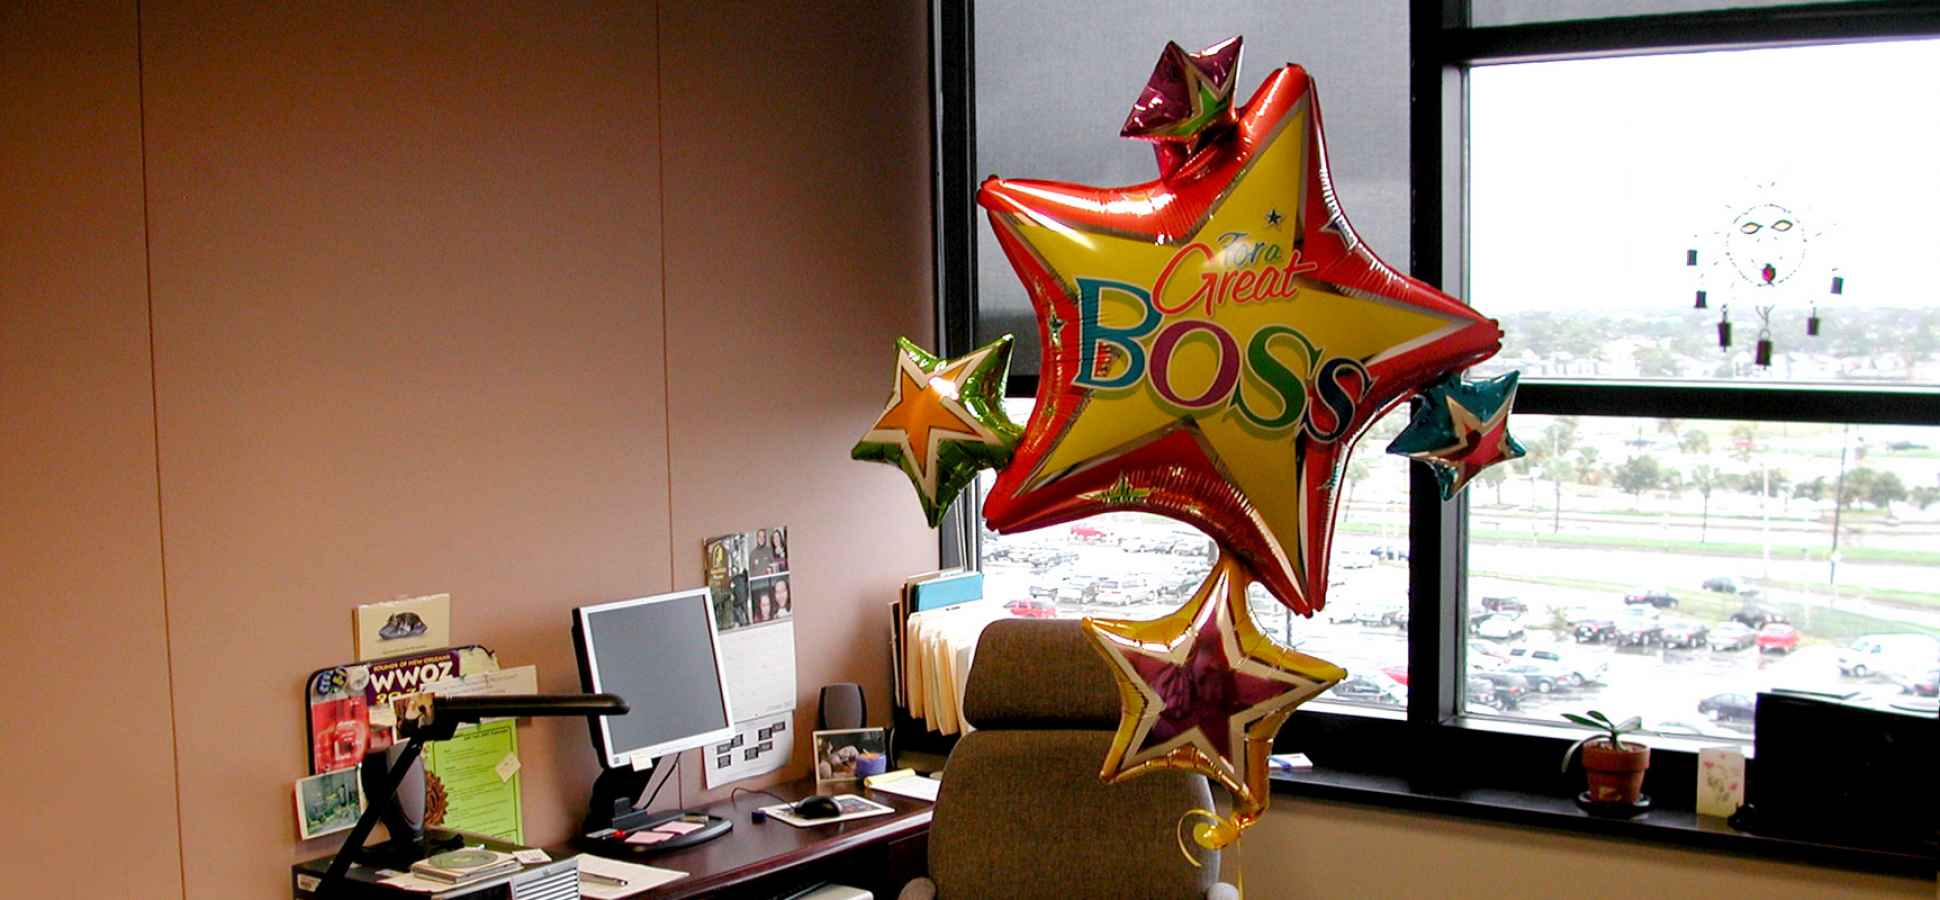 6 Surprising Secrets of Truly Great Bosses